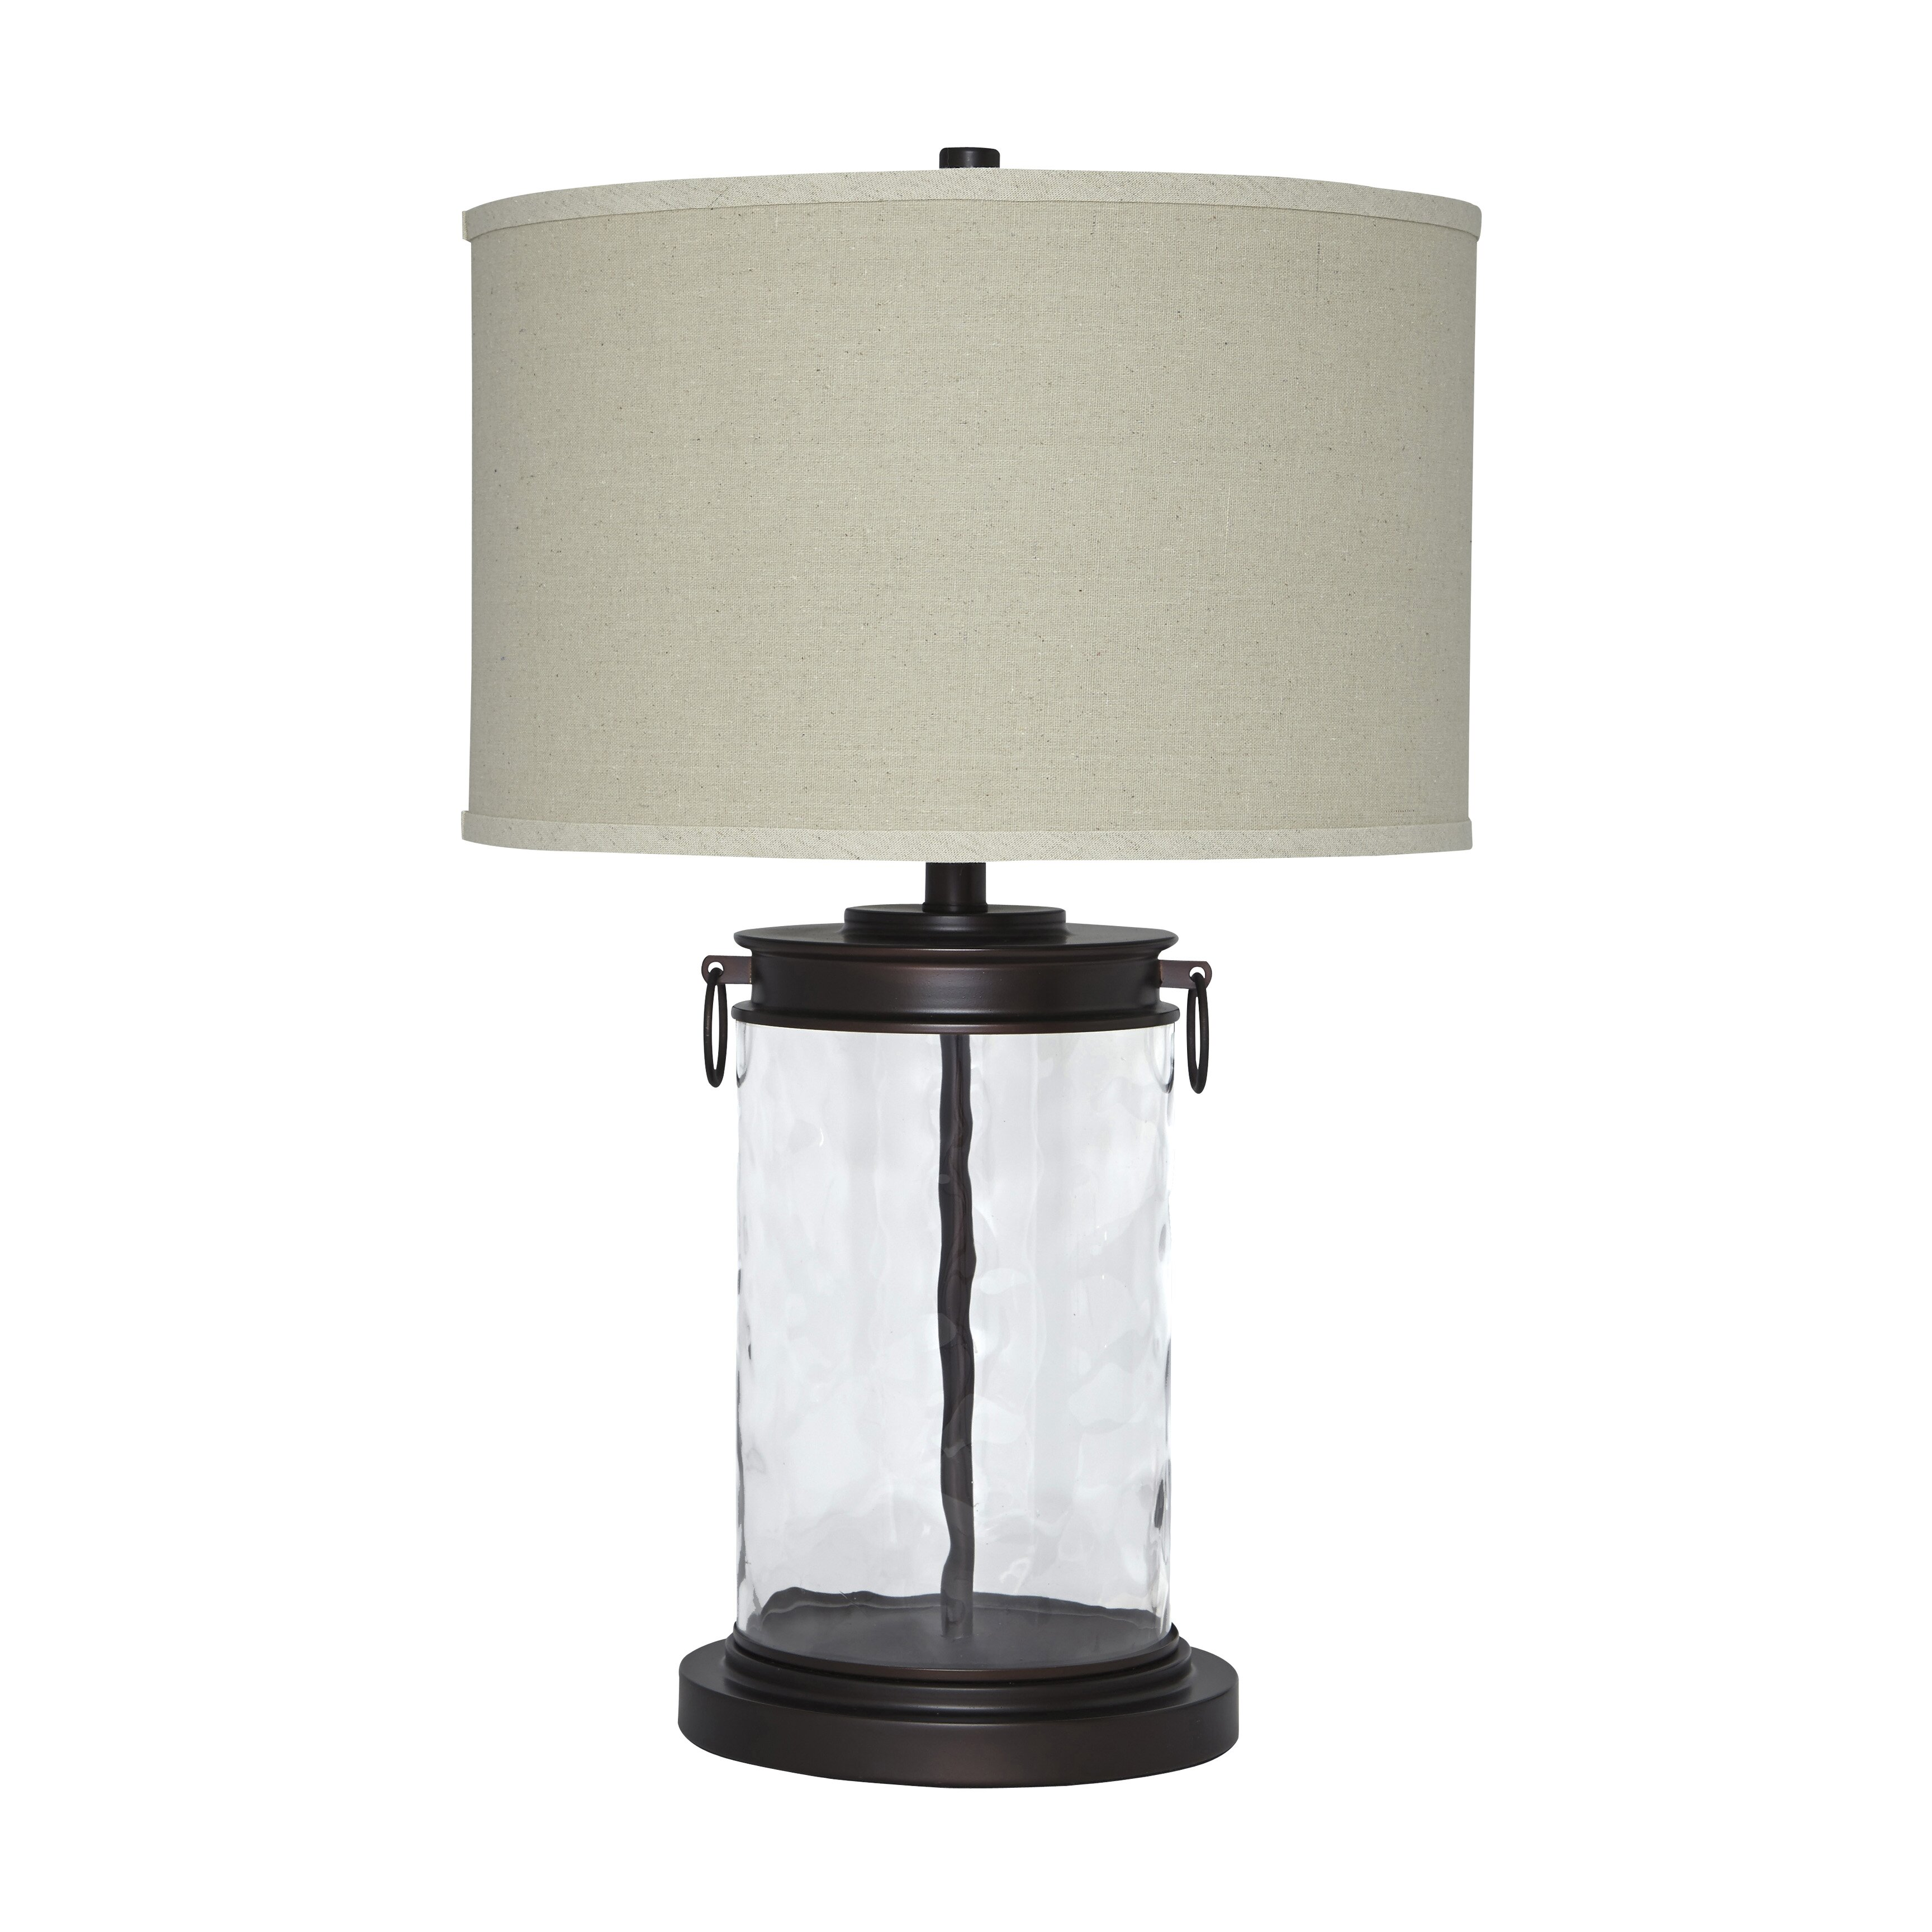 Laurel Foundry Modern Farmhouse Blanchard 25 5 Quot Table Lamp